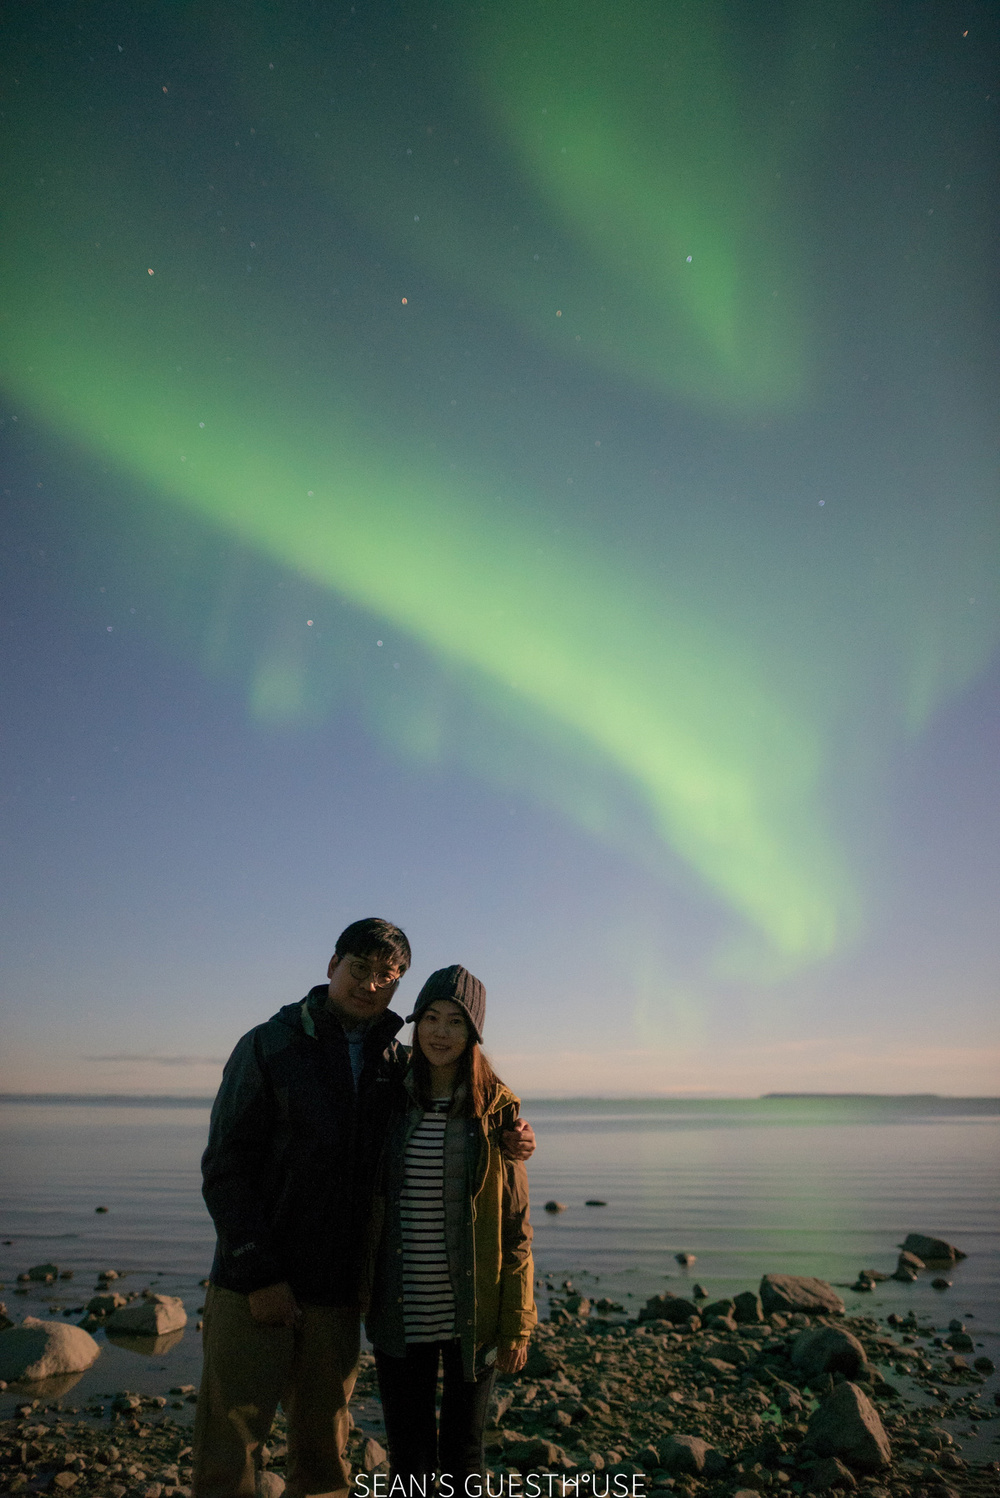 Sean's Guesthouse - Yellowknife Northern Lights Chasing - 6.jpg